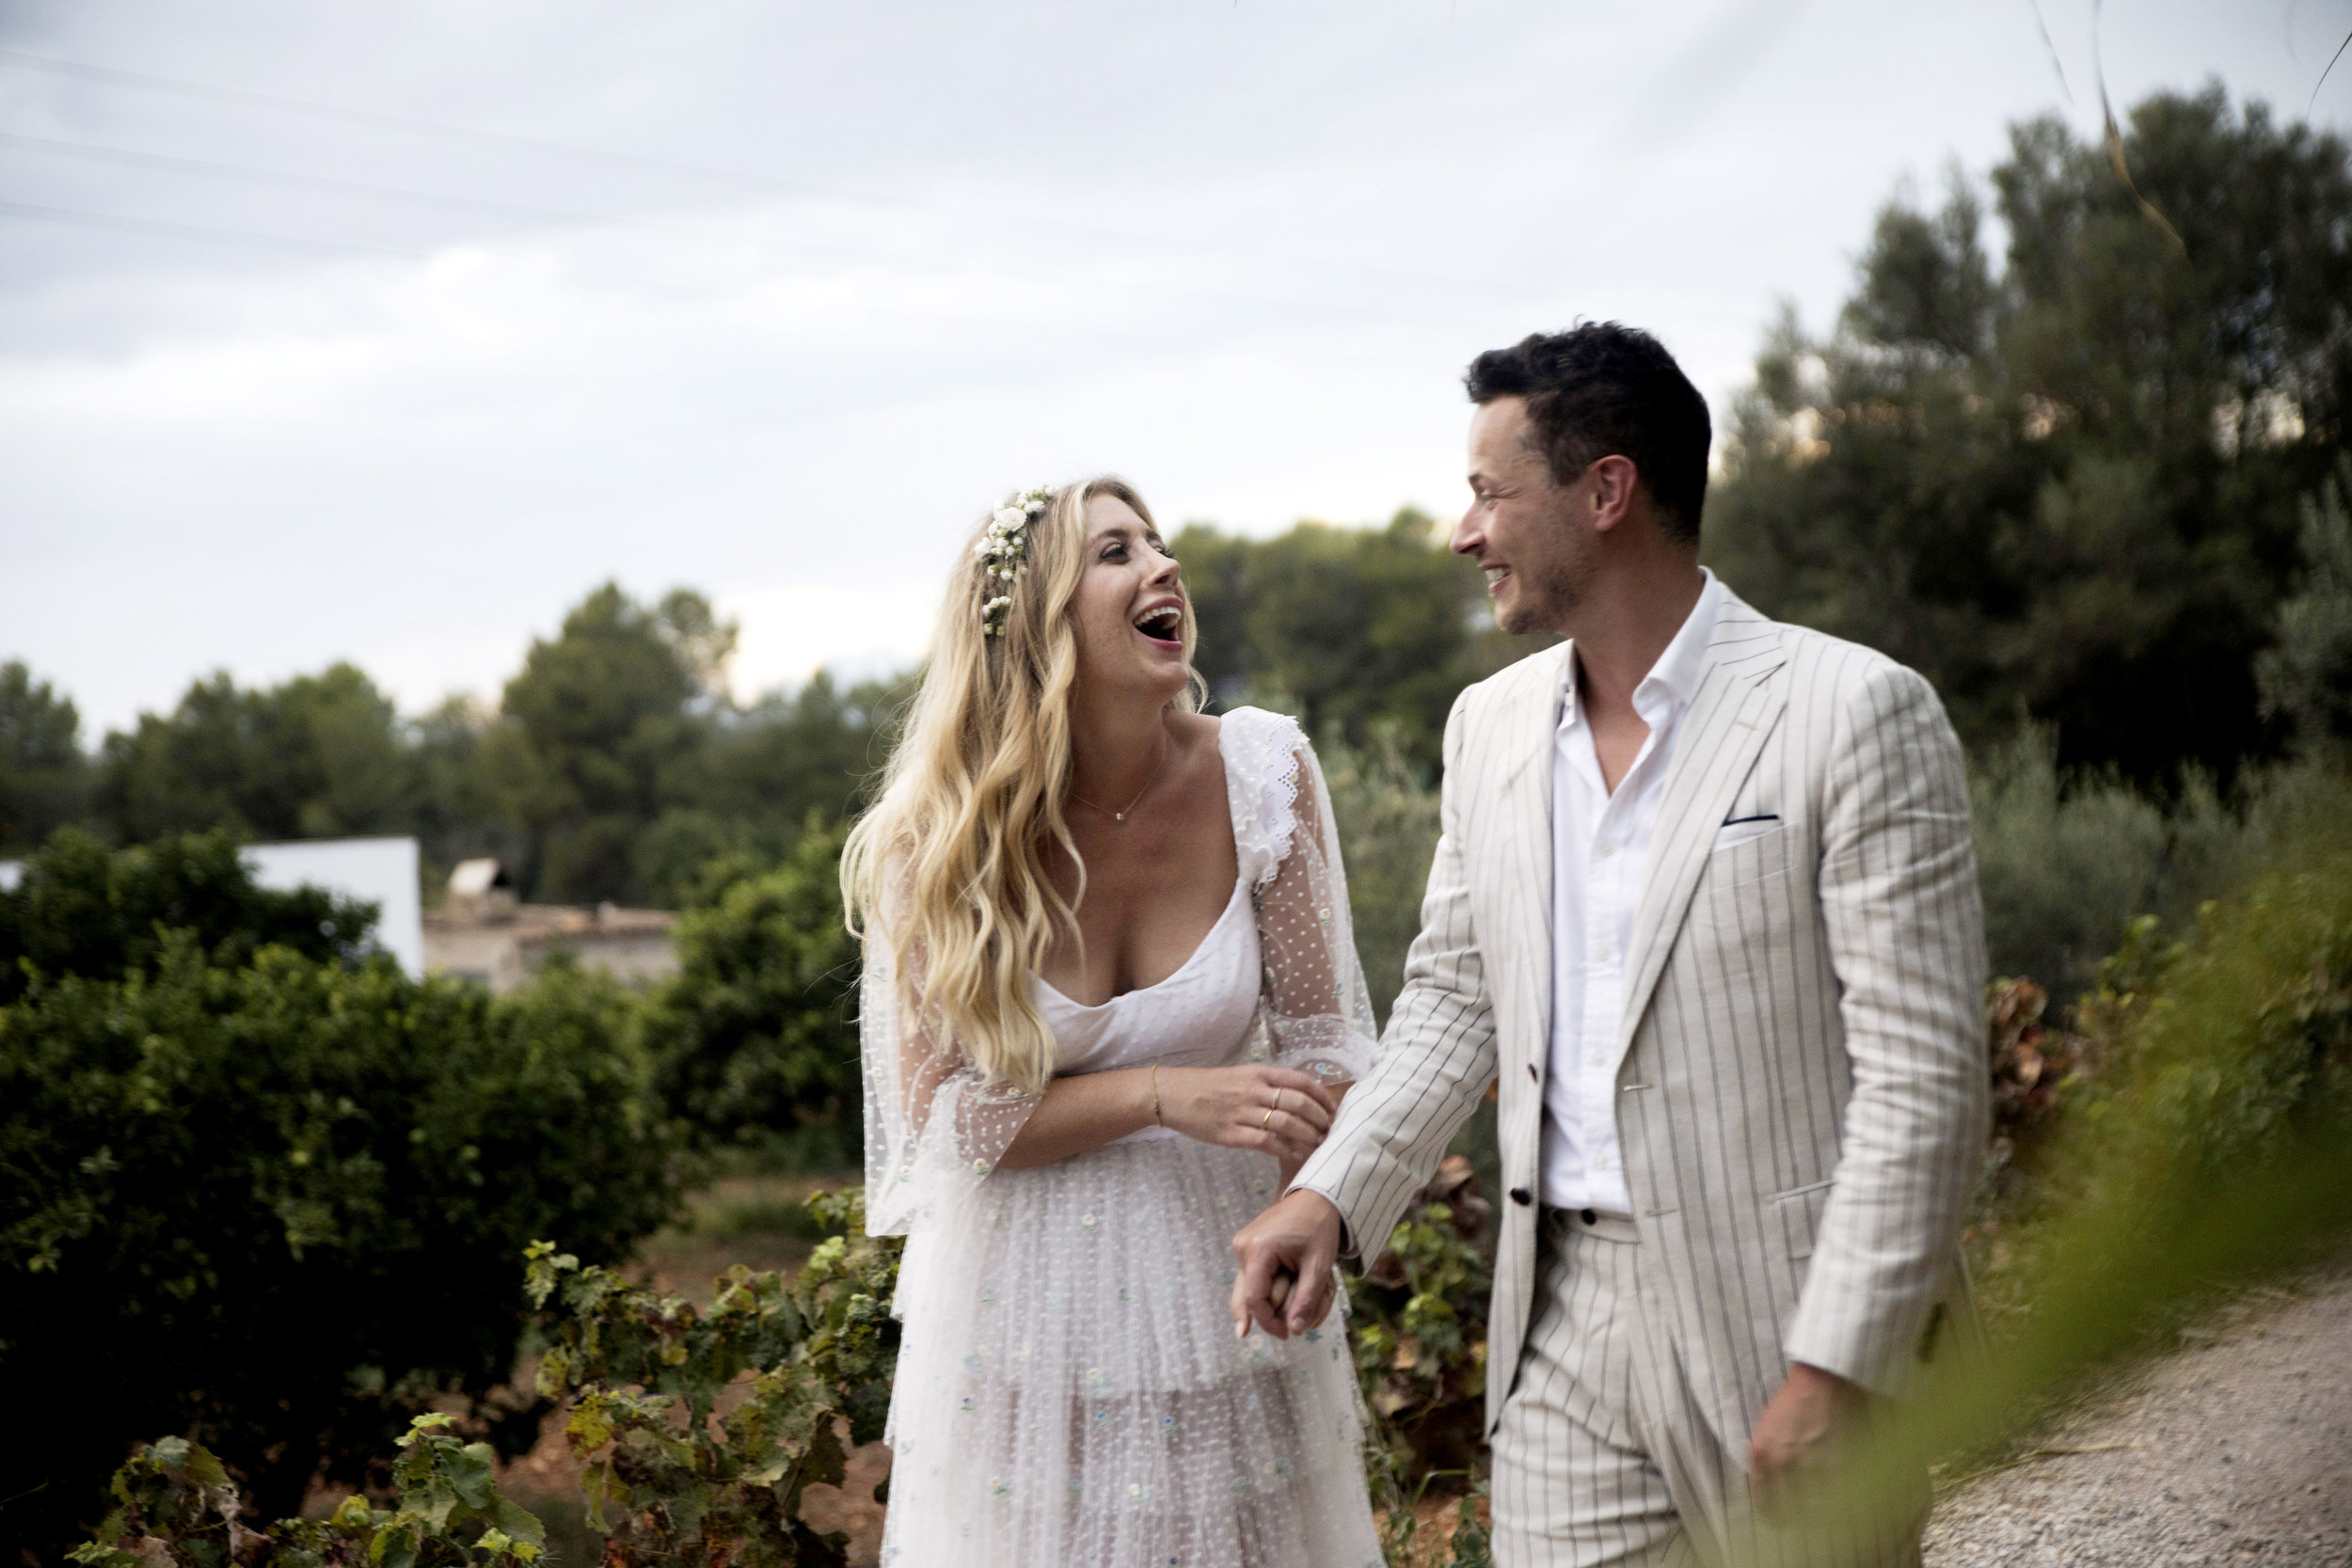 Jeremy did a fab job capturing our big day in Ibiza, he is super easy going and really enjoyable to have around, we were sad to see him go at the end of the night! Thank you so much for all the awesome photos.Big hugs Han & Nick x - Hannah & Nick, Can Gall, Ibiza